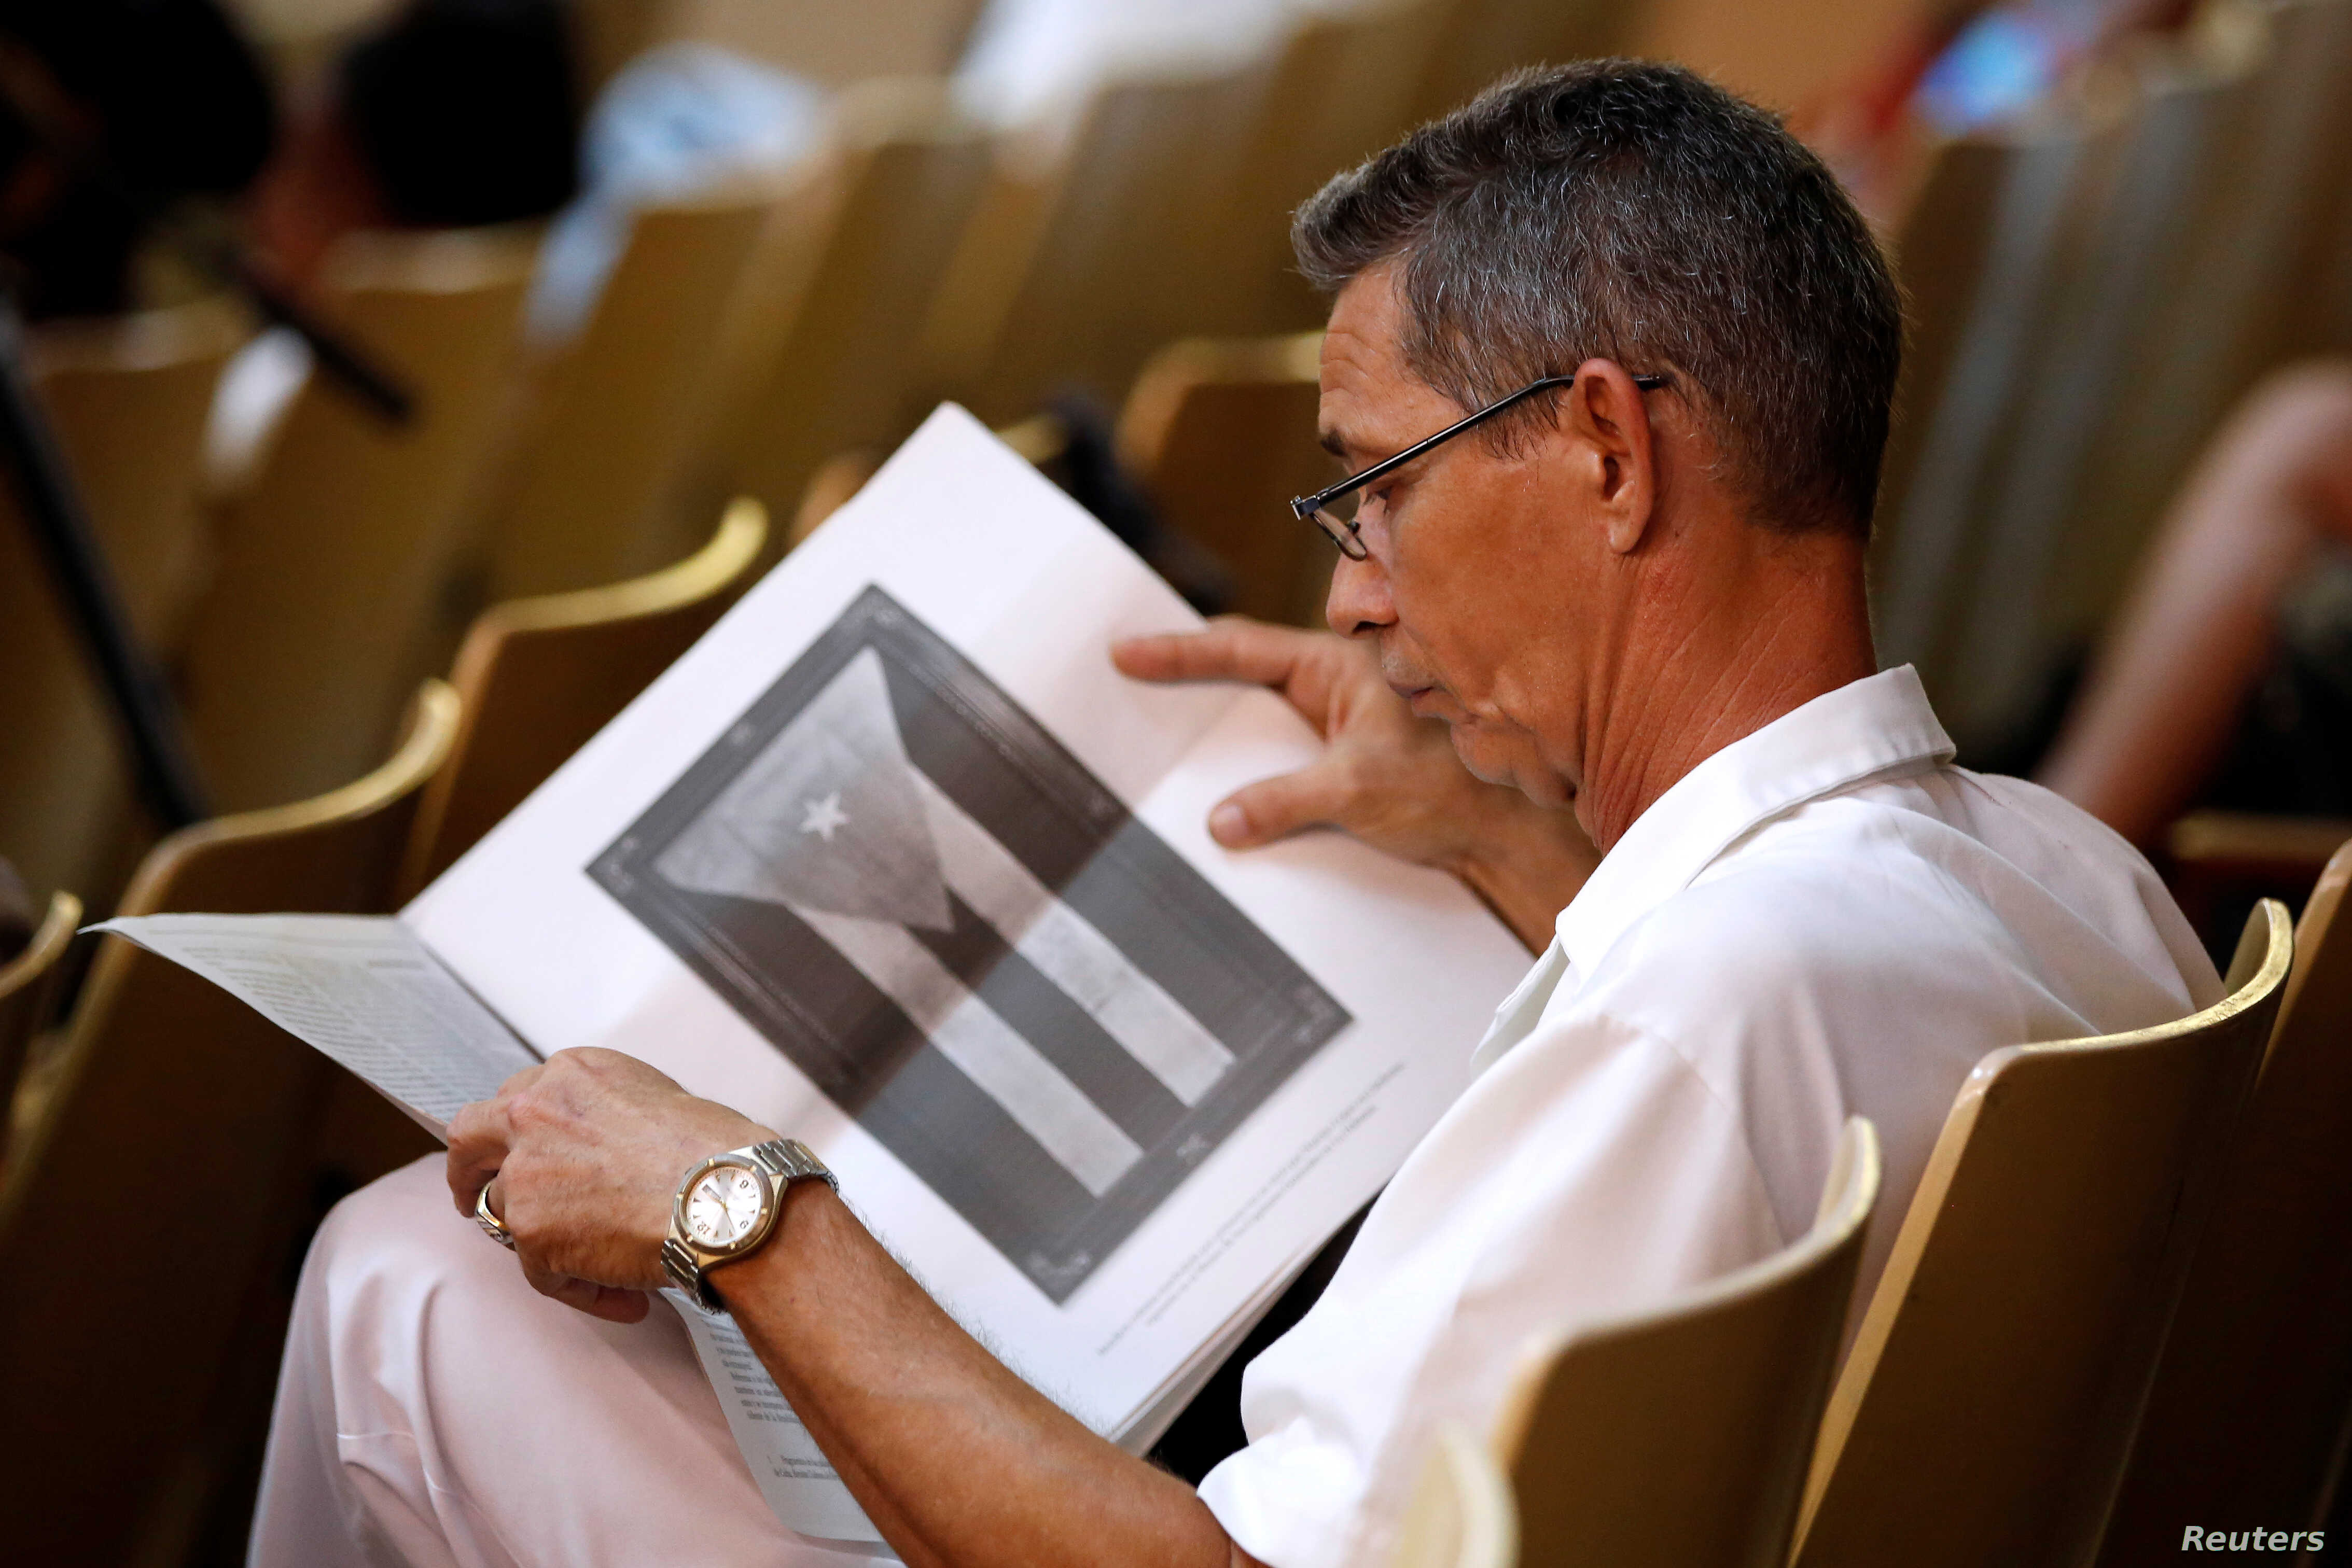 A Cuban reads the draft proposal of changes to the constitution during the beginning of a public political discussion to revamp a Cold War-era constitution at the Nguyen Van Troi Polyclinic in Havana, Aug. 13, 2018.